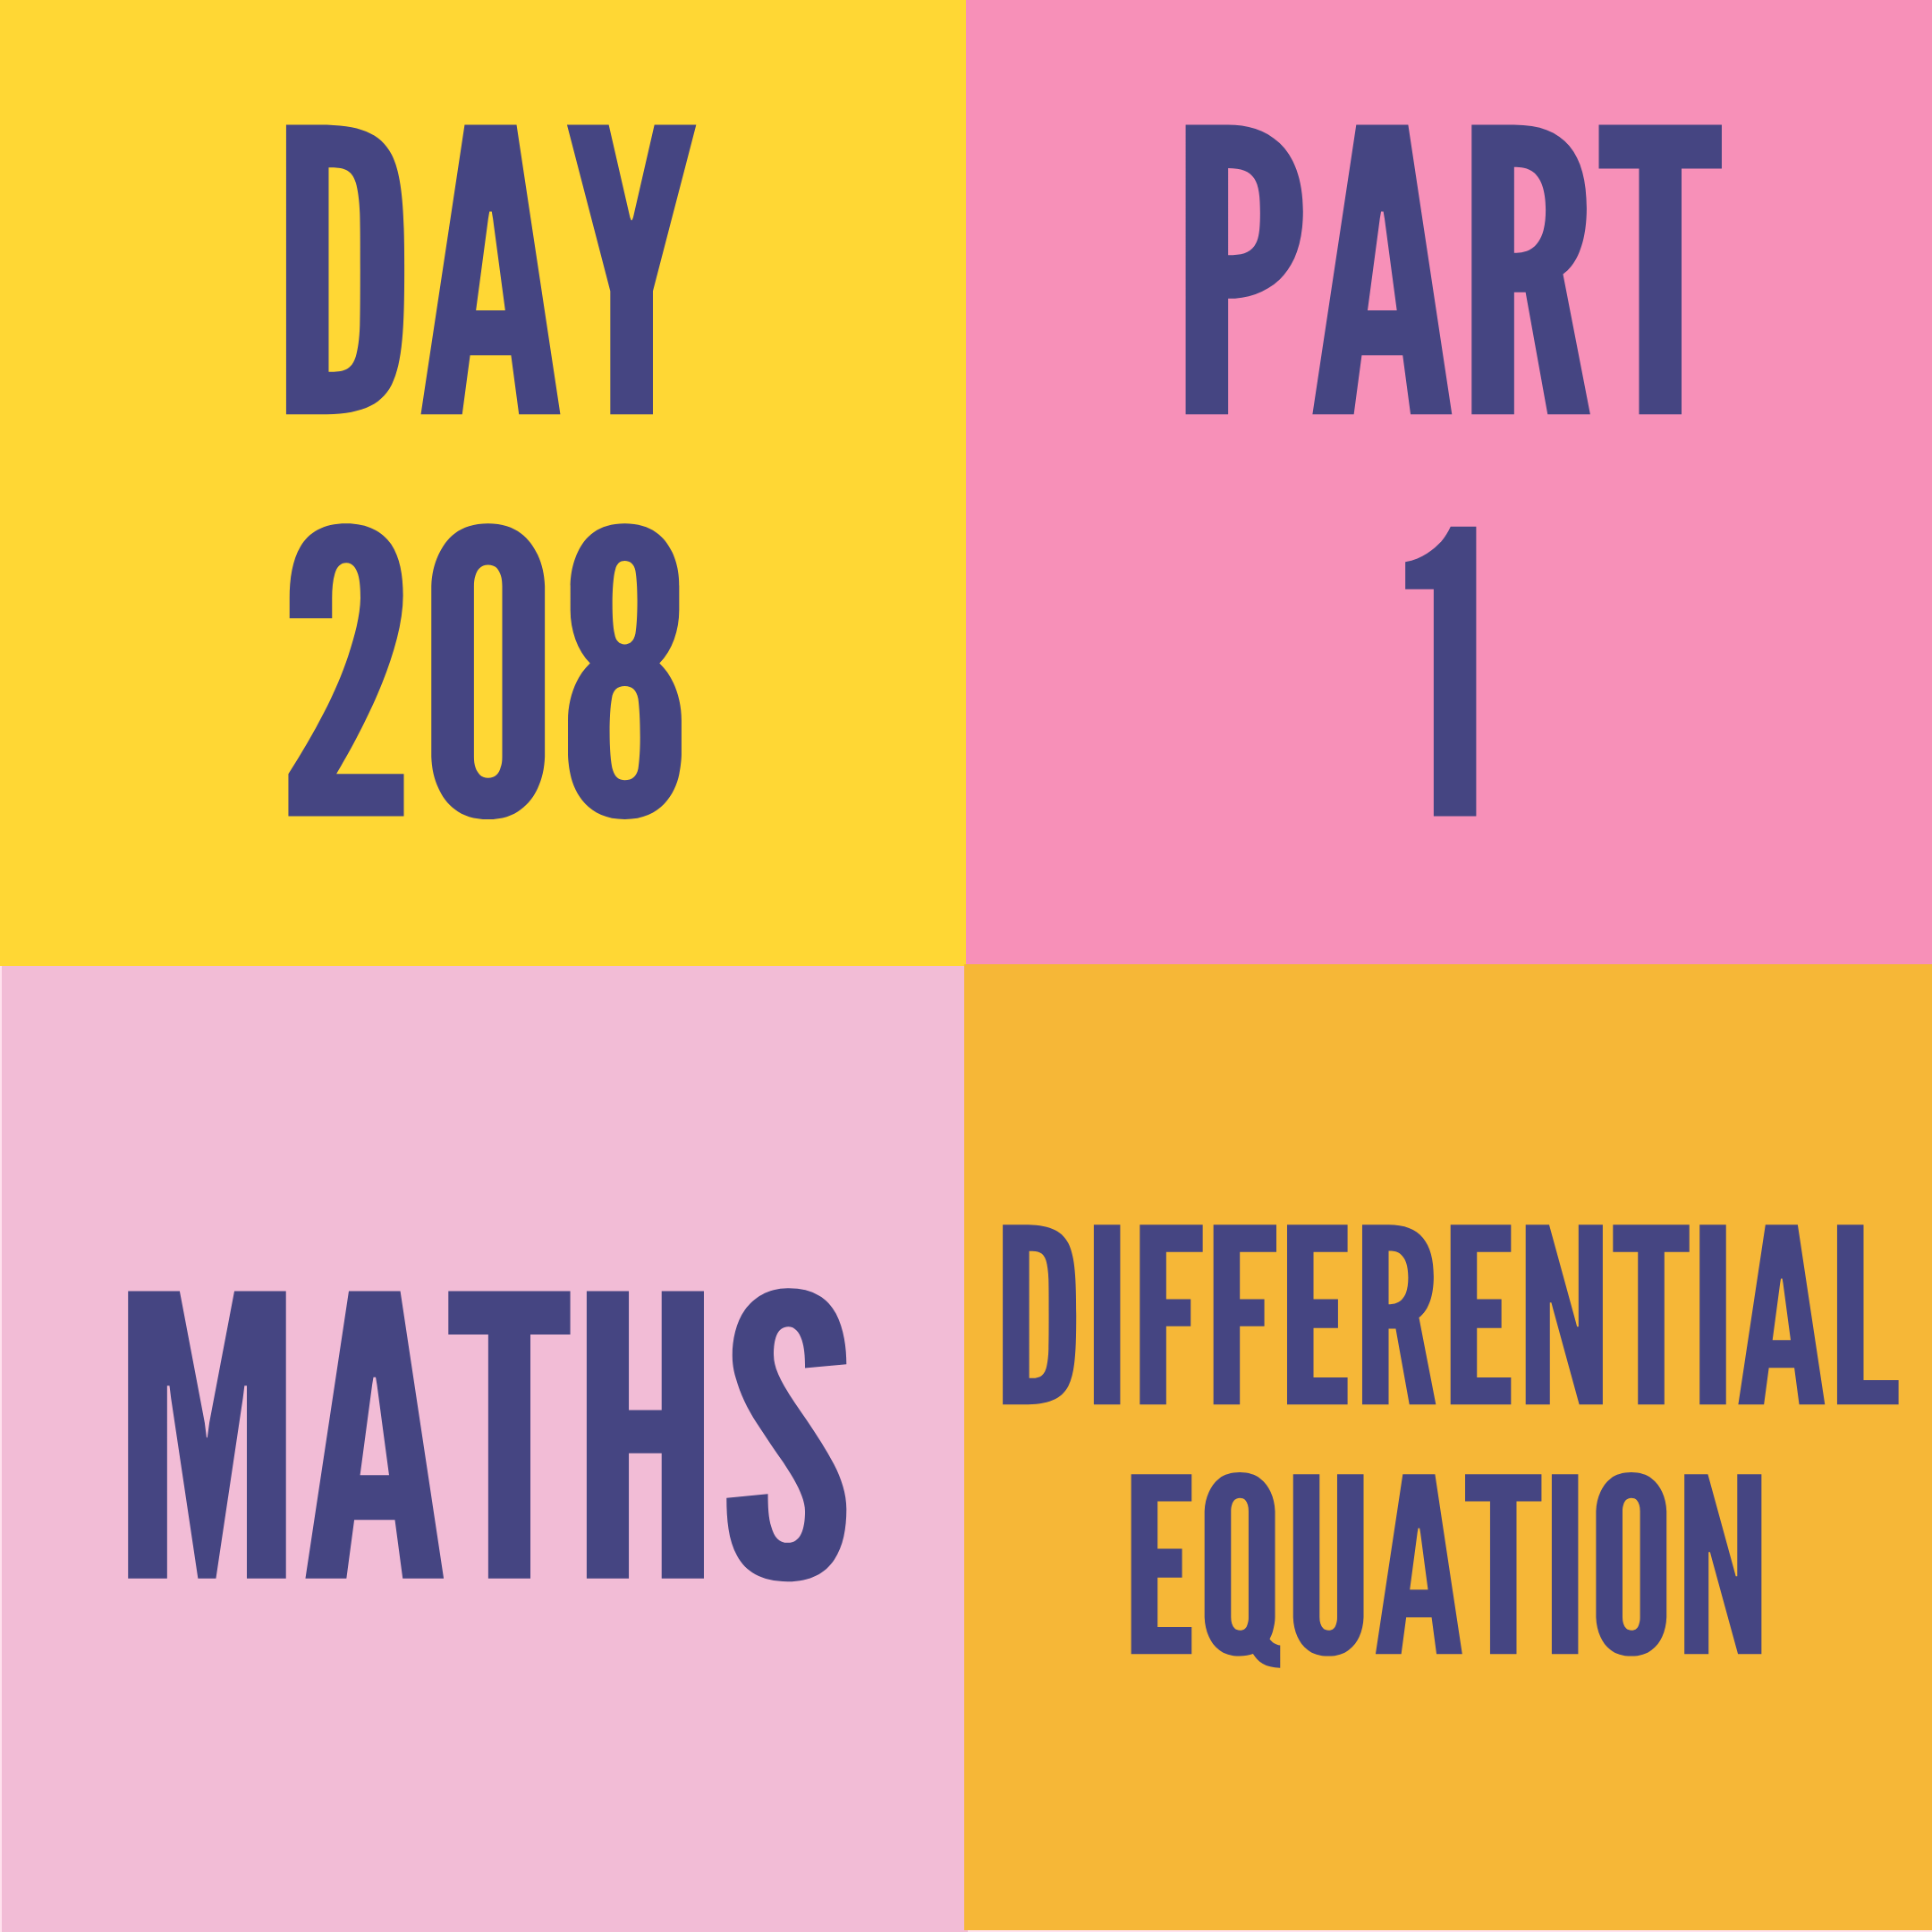 DAY-208 PART-1 (Target) DIFFERENTIAL EQUATION